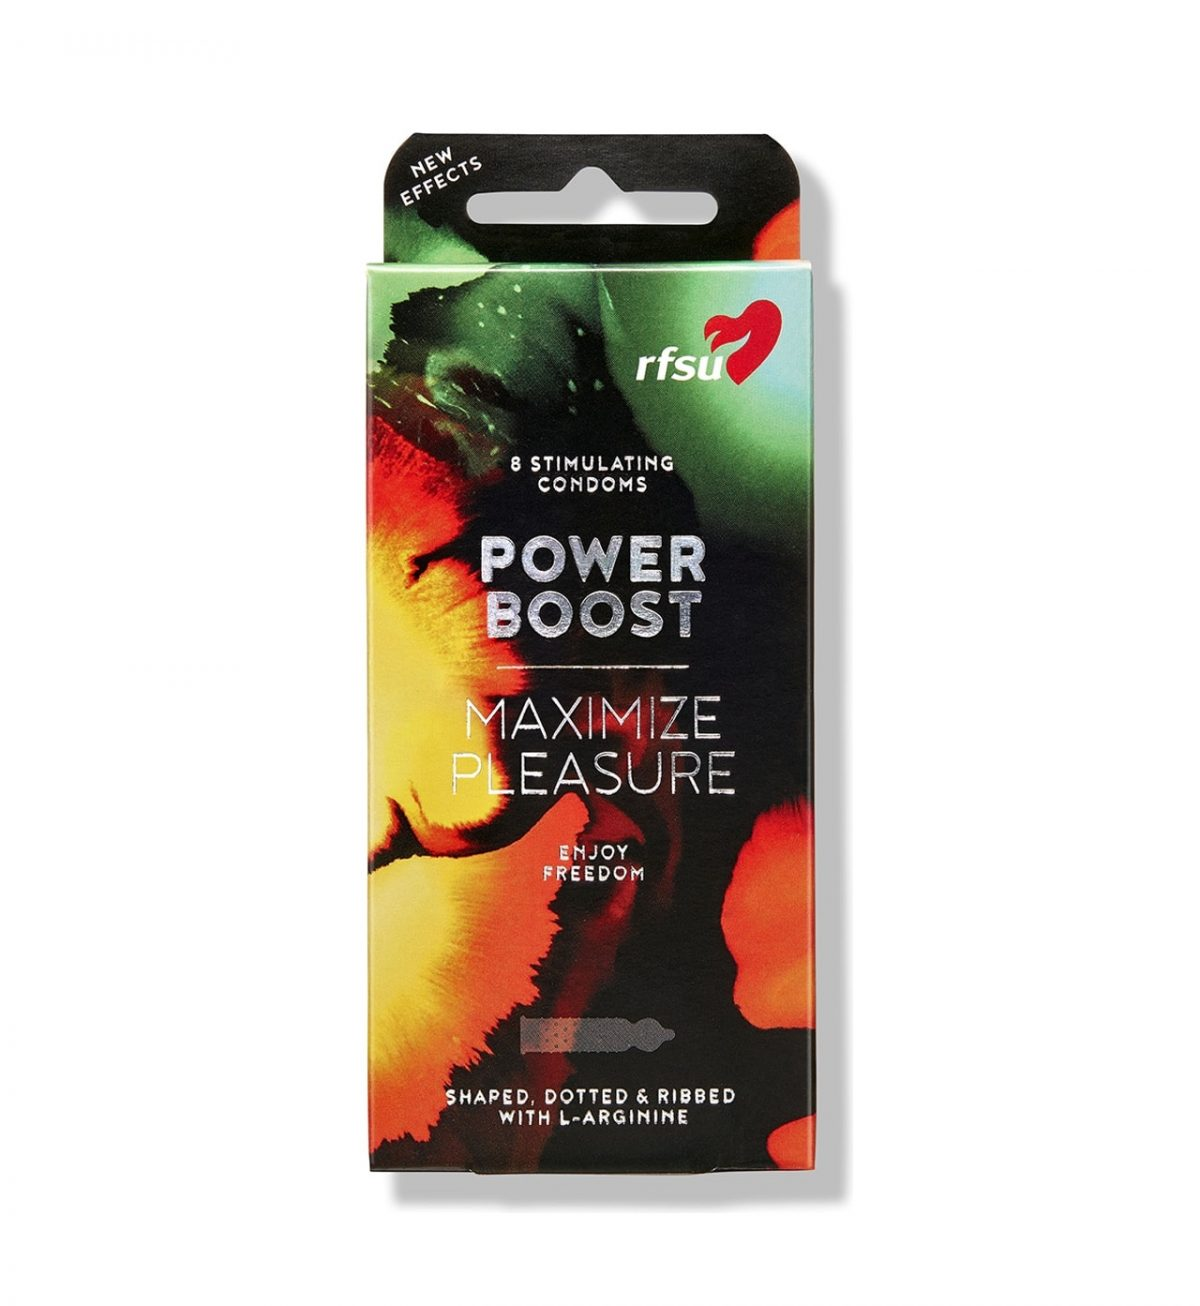 rfsu power boost kondomer 8 pack